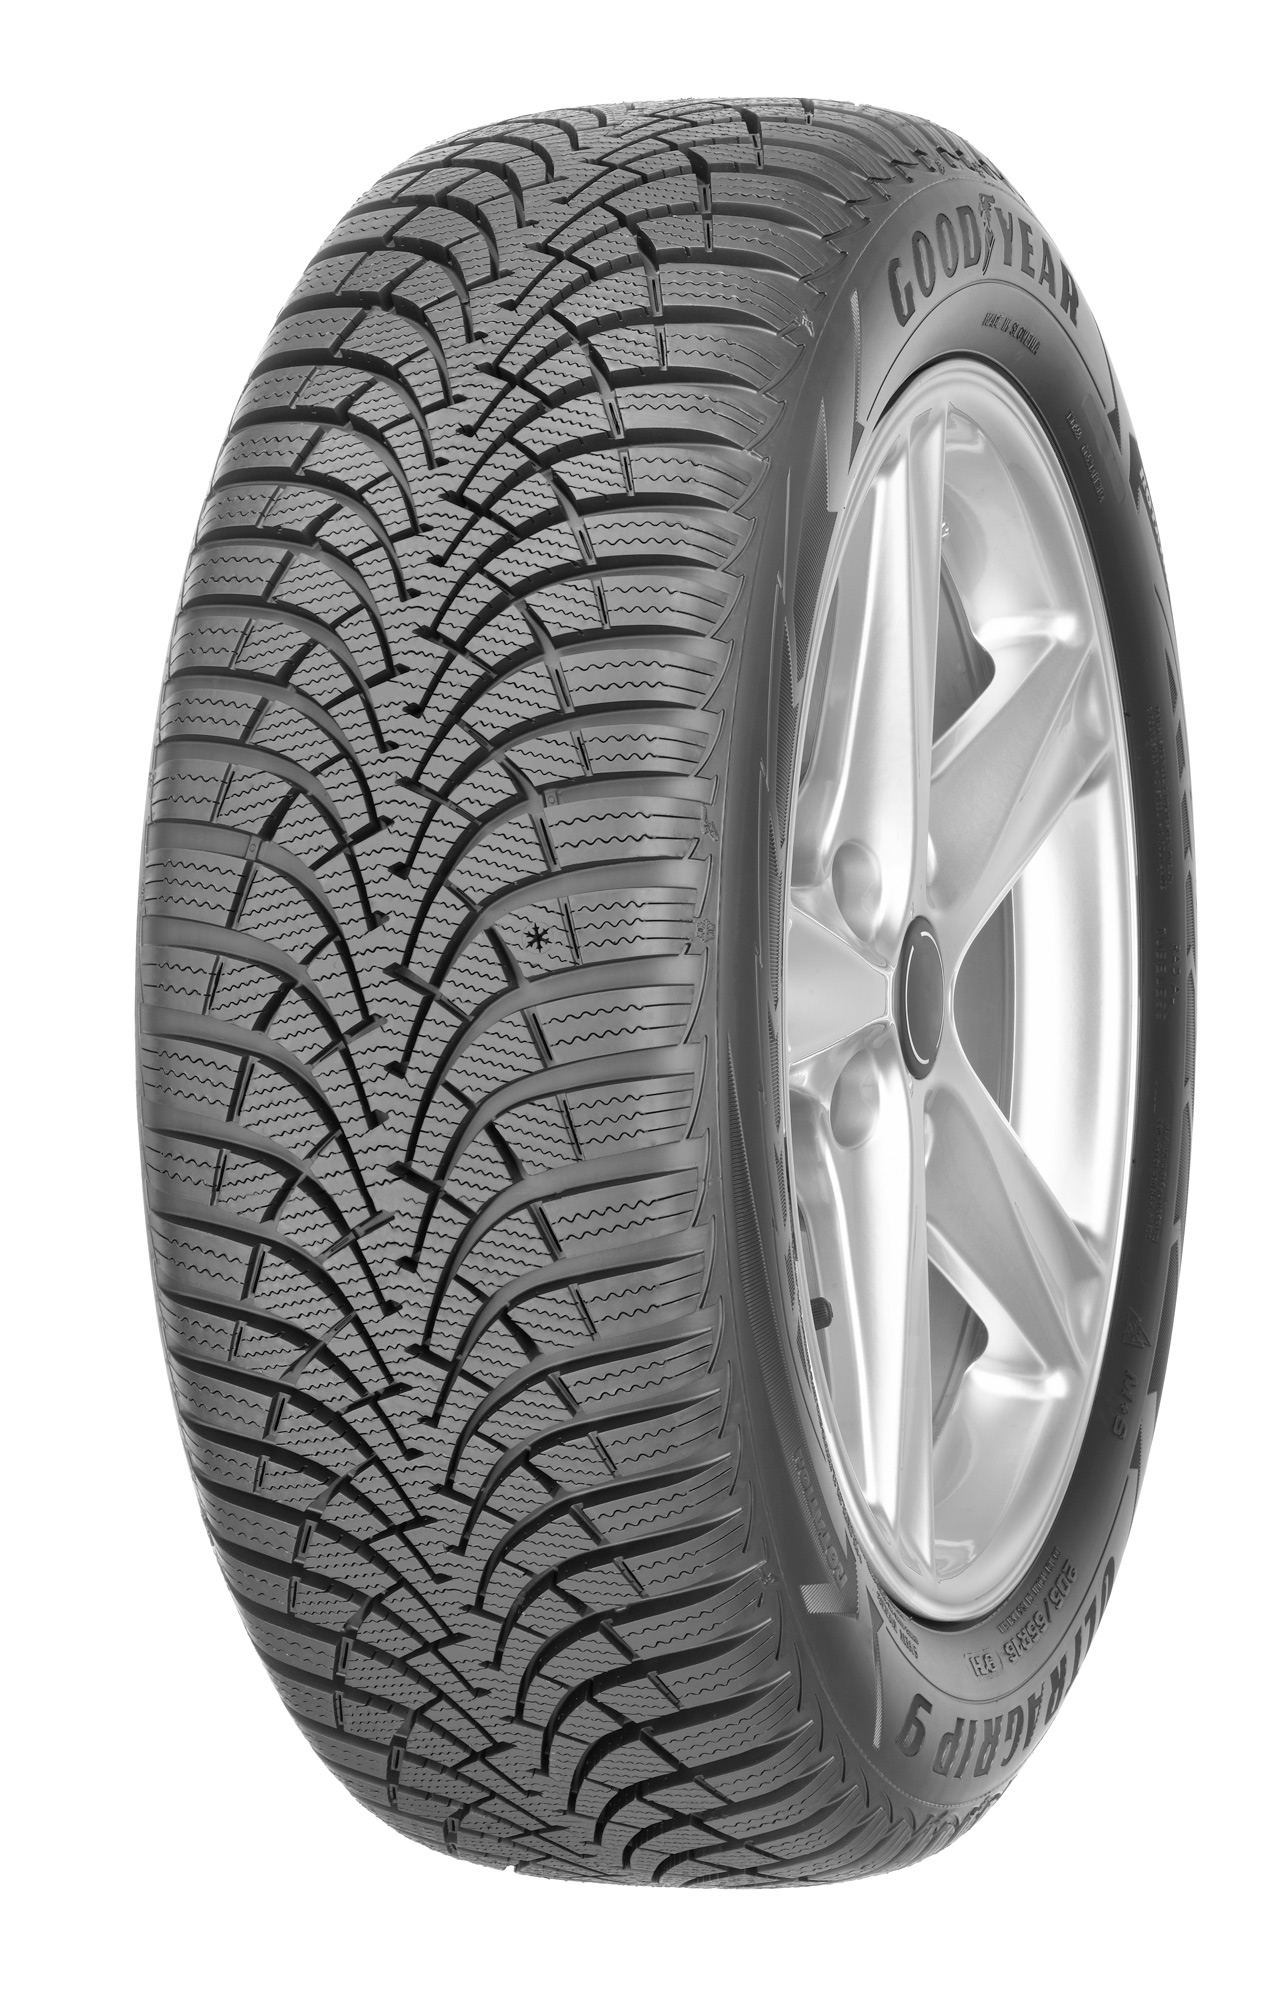 Anvelopa iarna GOODYEAR UG 9 MS 205/65 R15 94T